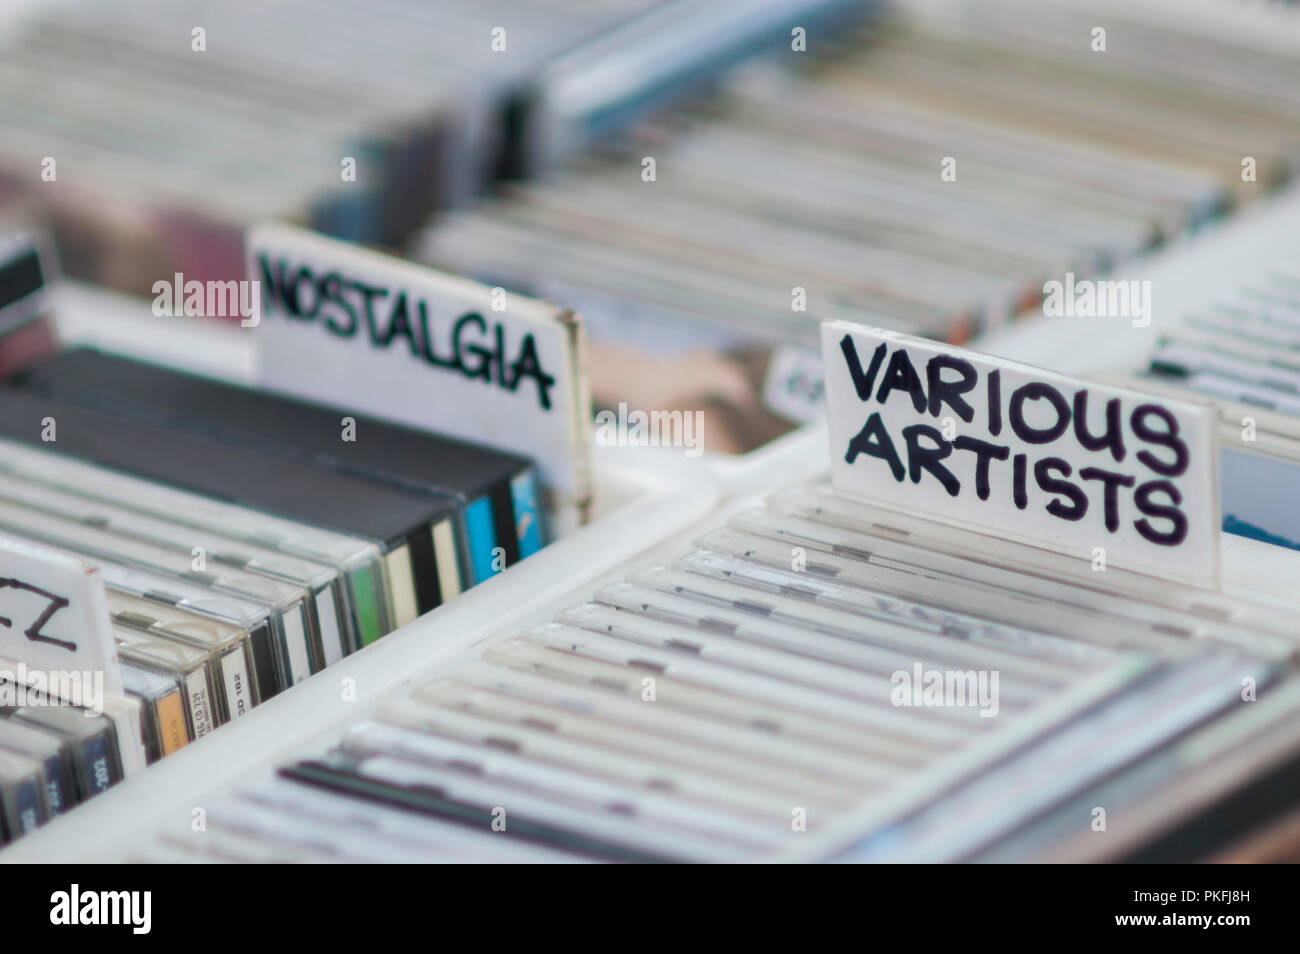 Second hand CDs for sale - Stock Image